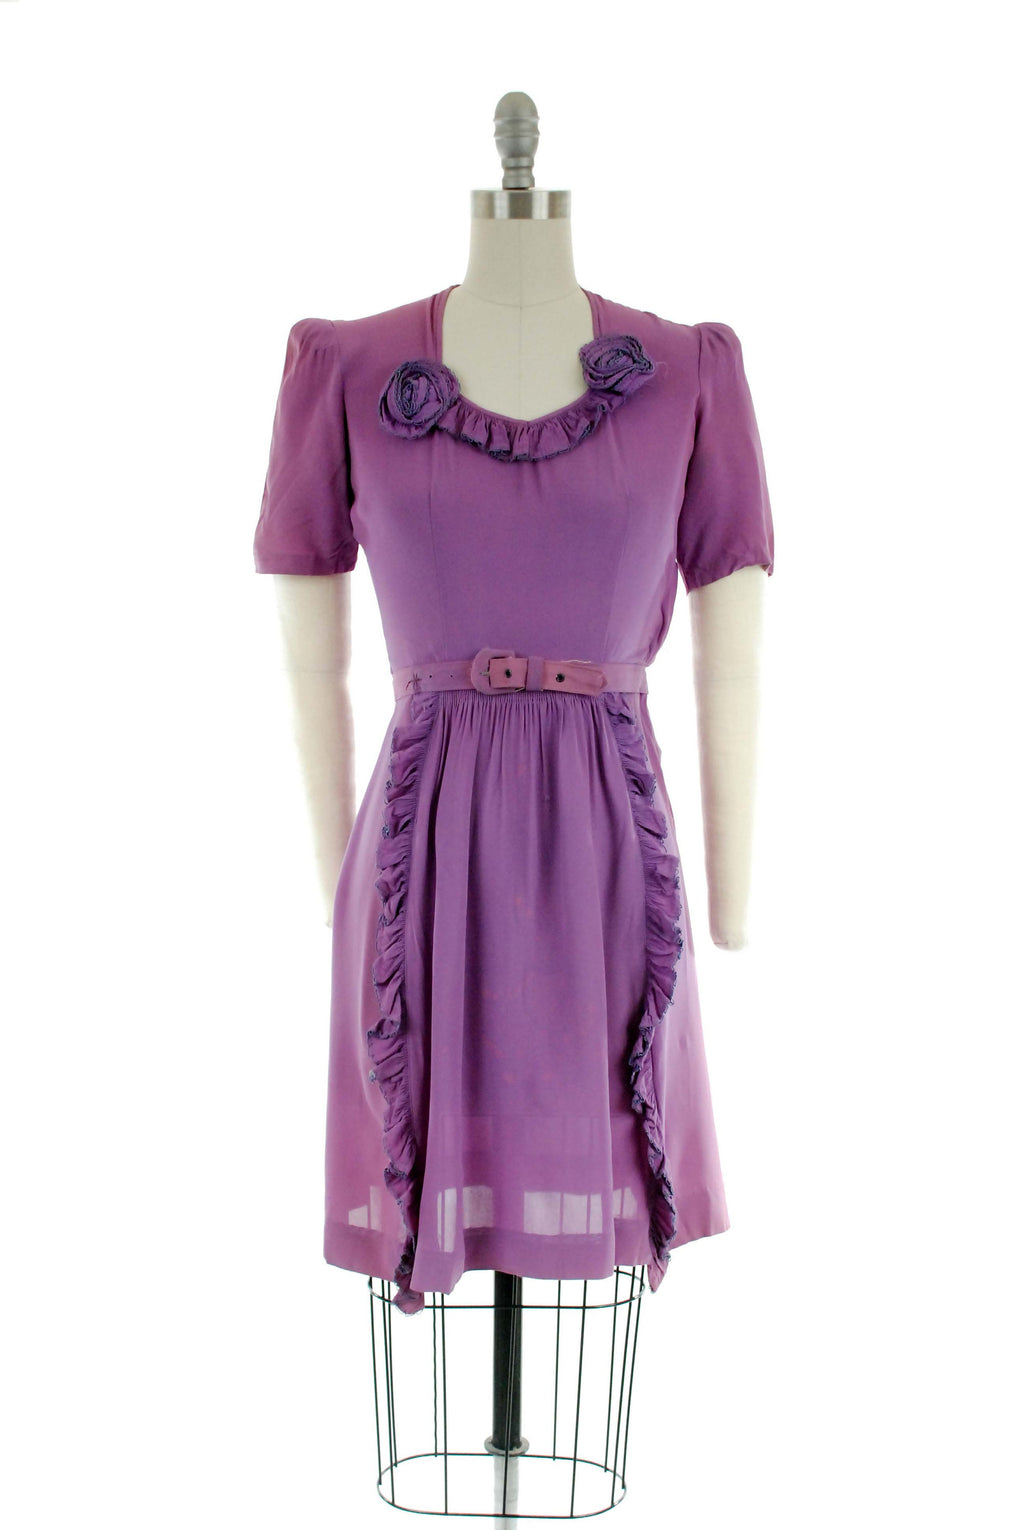 Vintage 1940s Dress -  Beautiful Bold Lilac Rayon Crepe Dress with Ruffles - As Is Wounded Bird